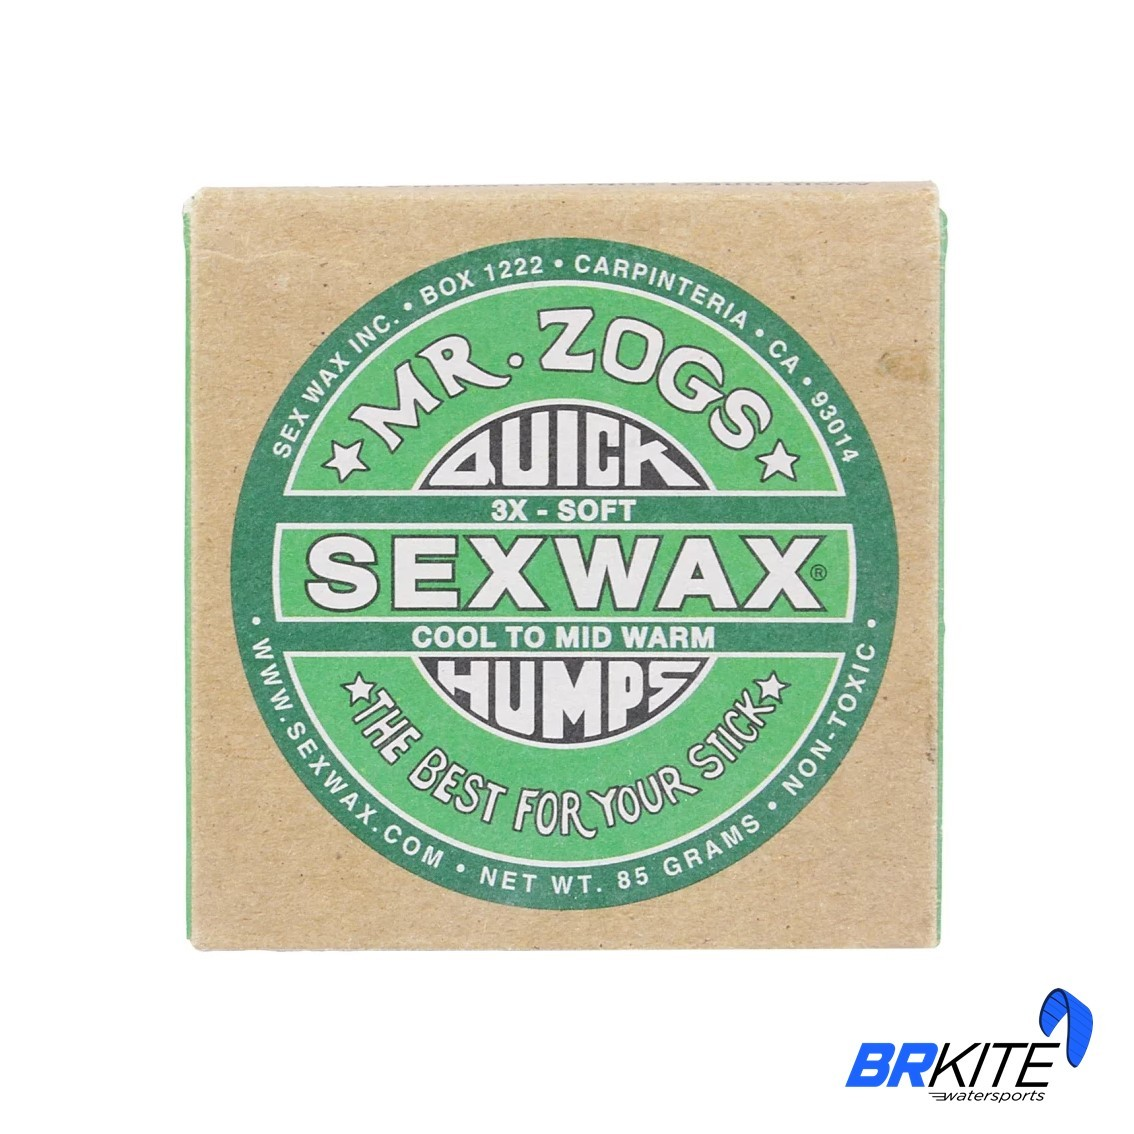 SEXWAX - PARAFINA QUICK HUMPS 3X VERDE - COOL TO MID WARM